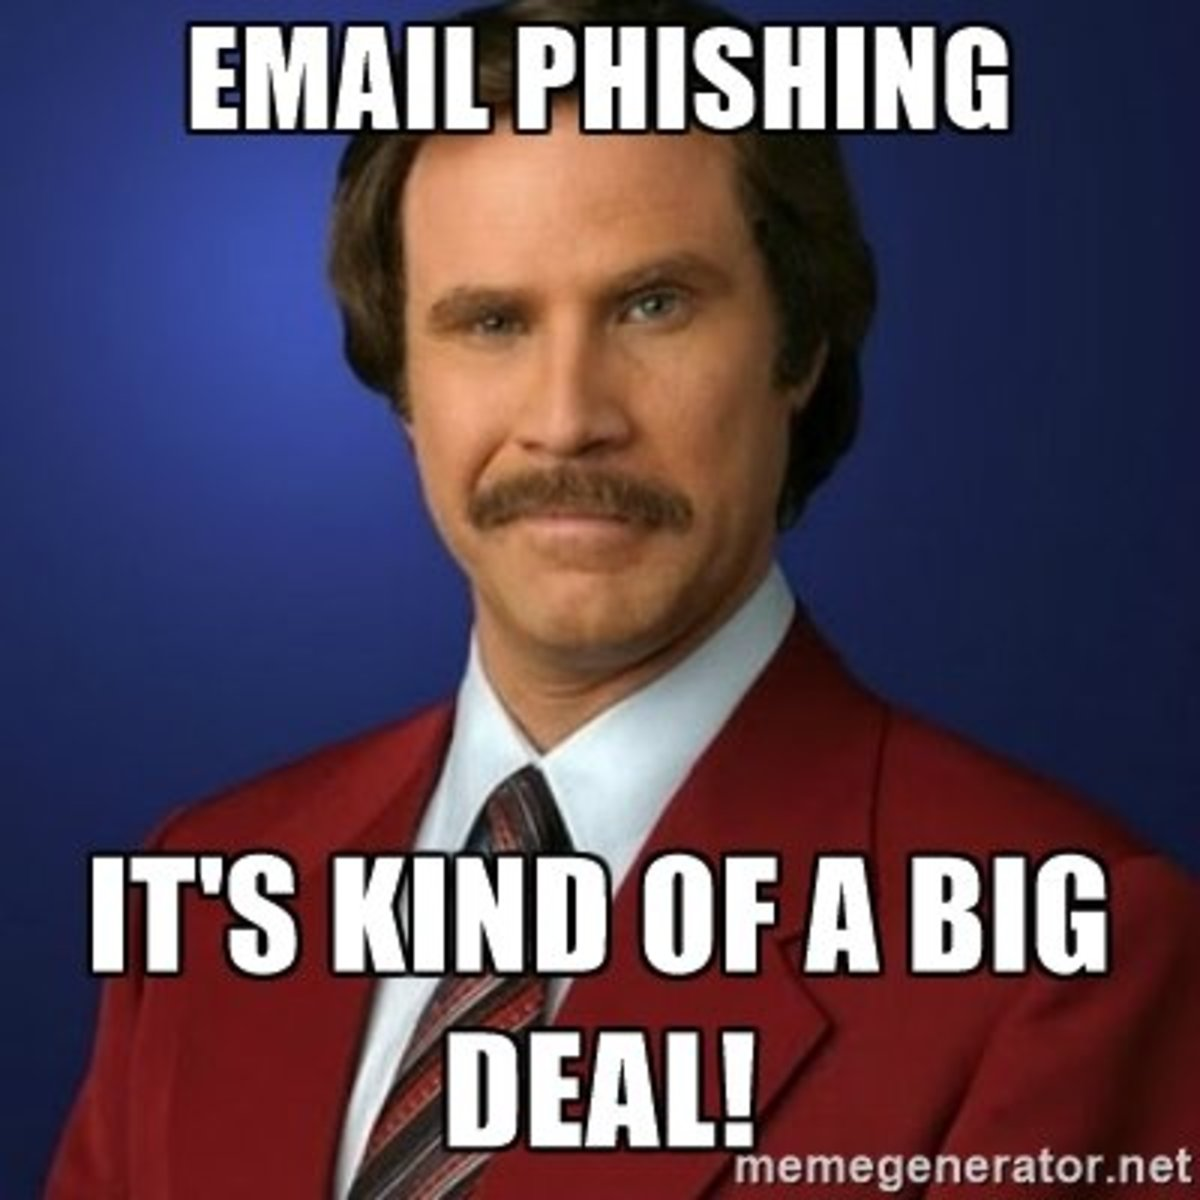 Scam Emails: Phishing